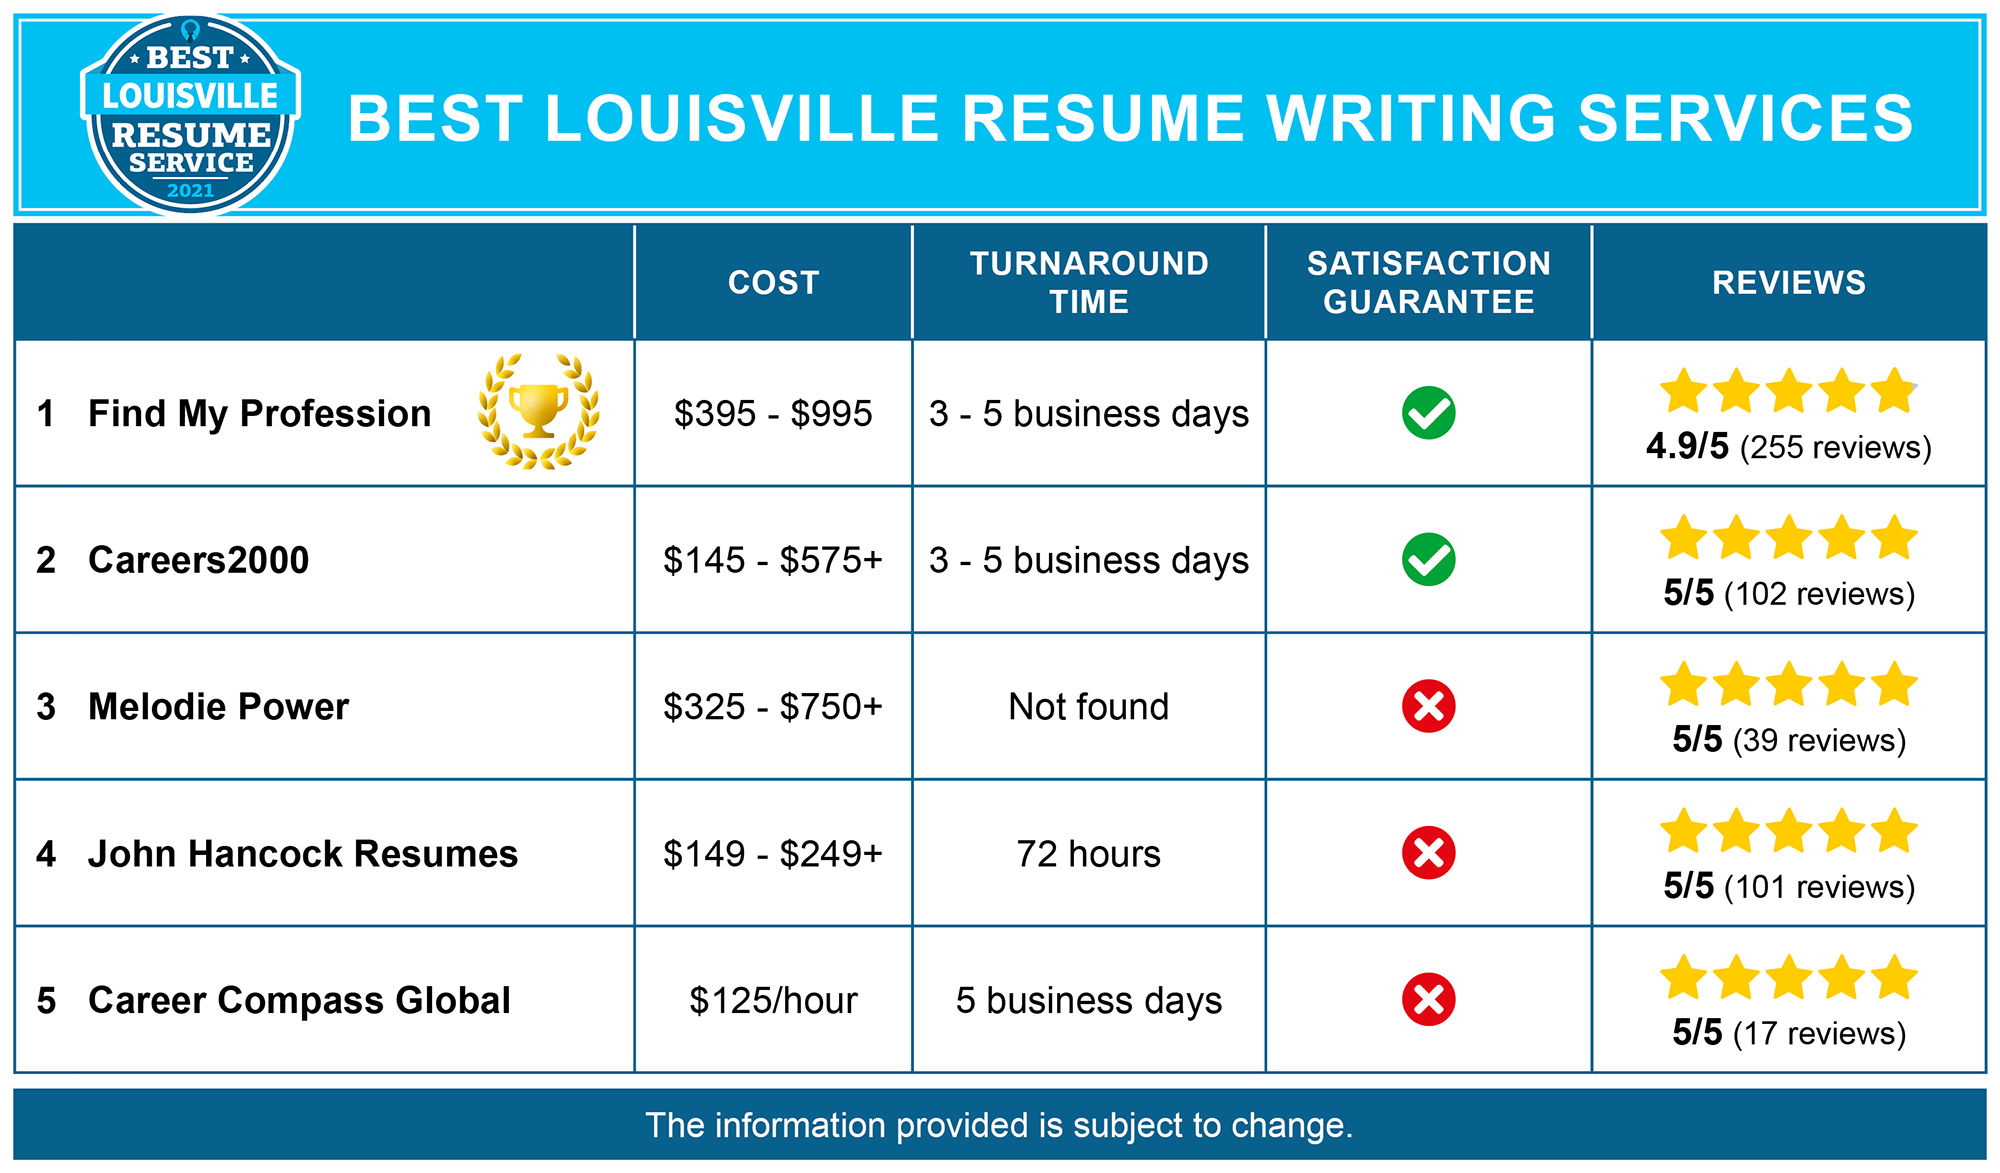 Best Louisville Resume Writing Services